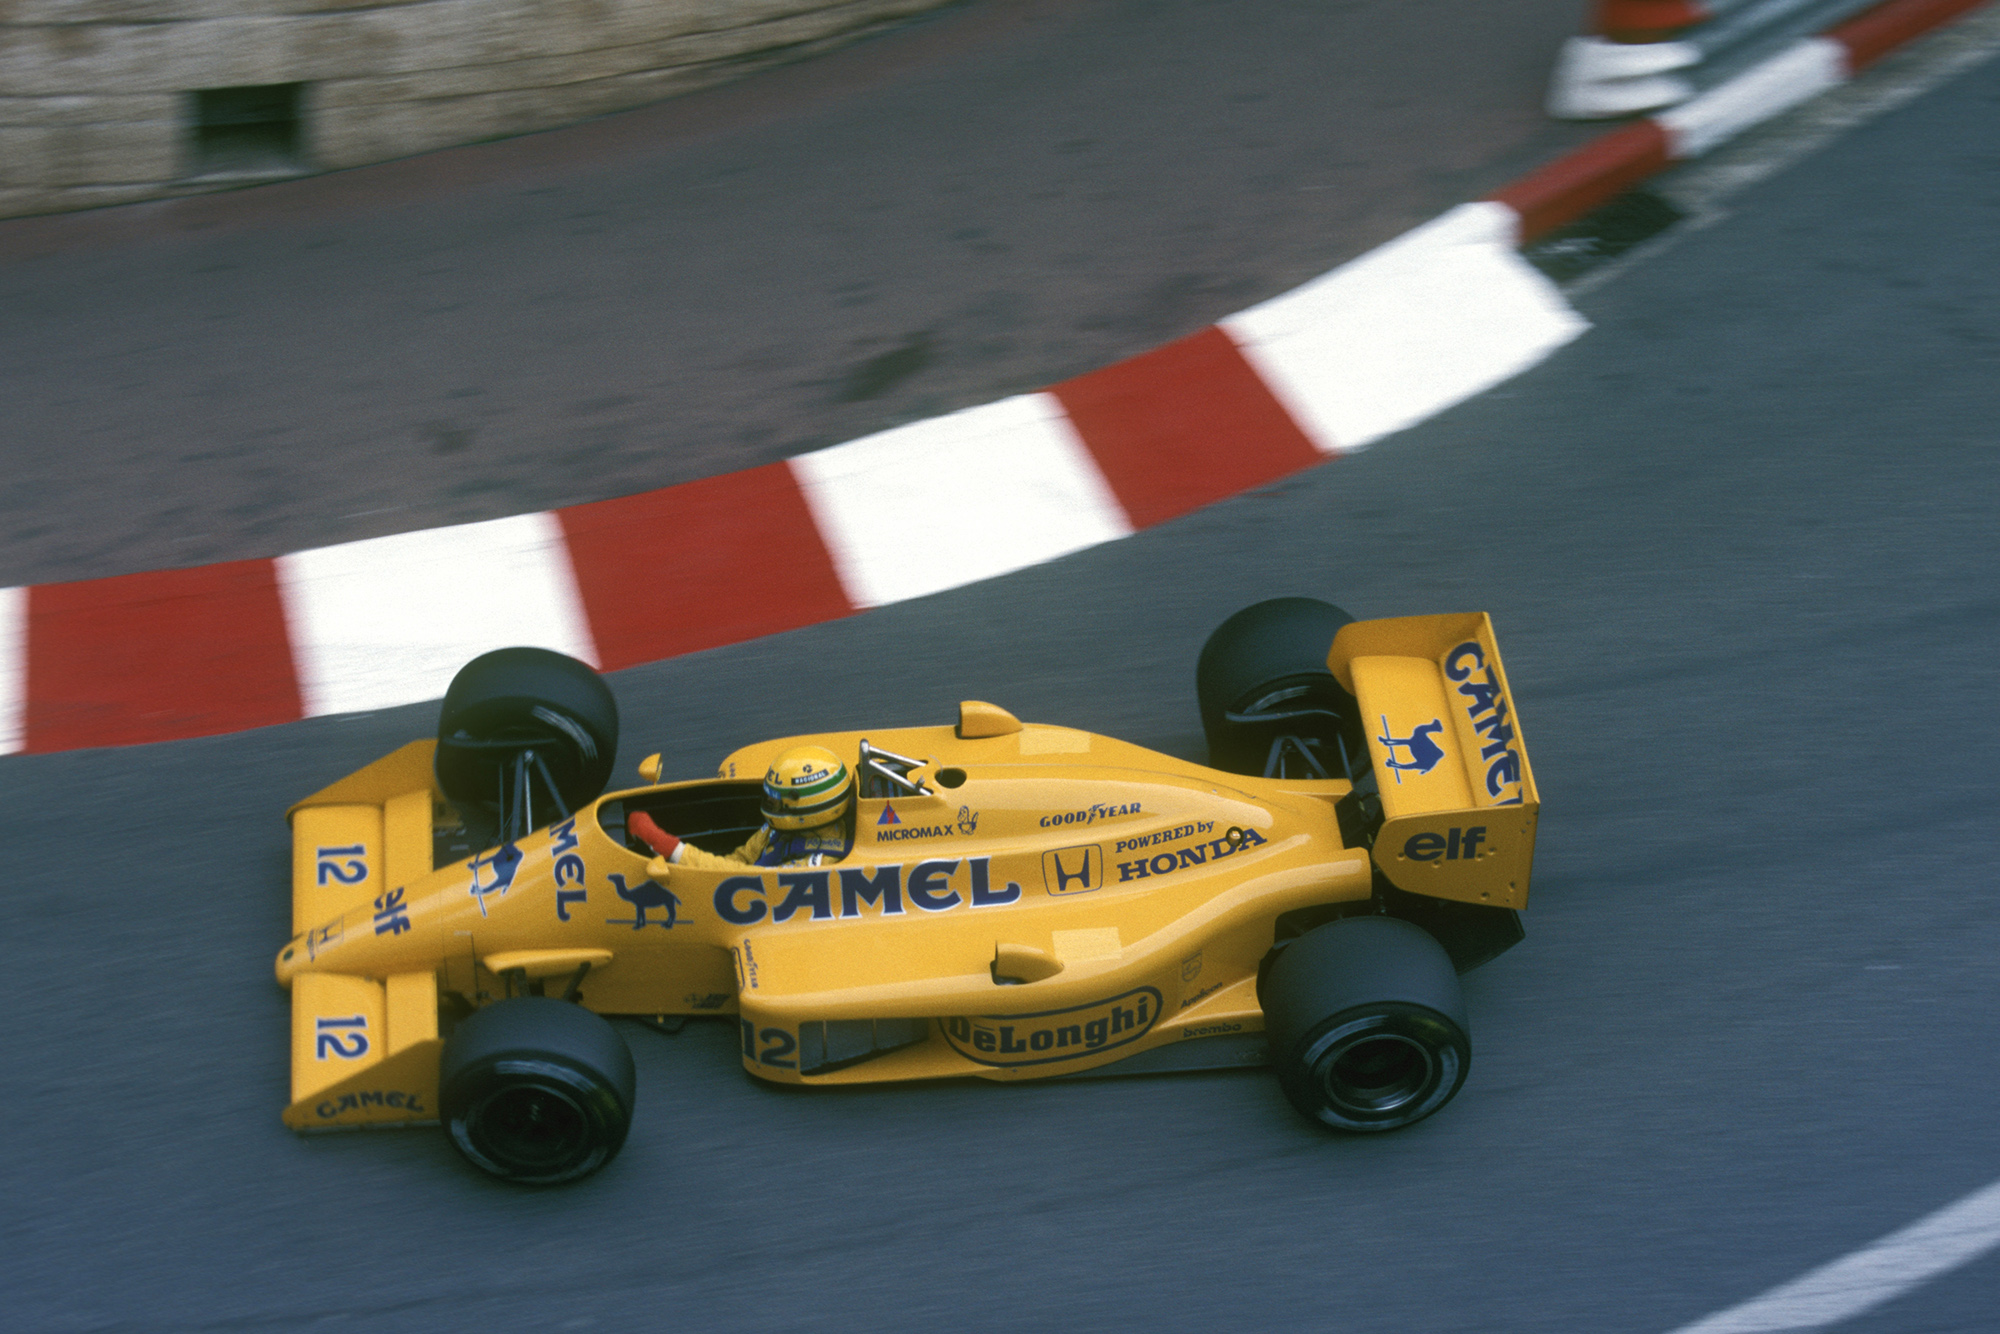 Ayrton Senna during the 1987 Monaco Grand Prix